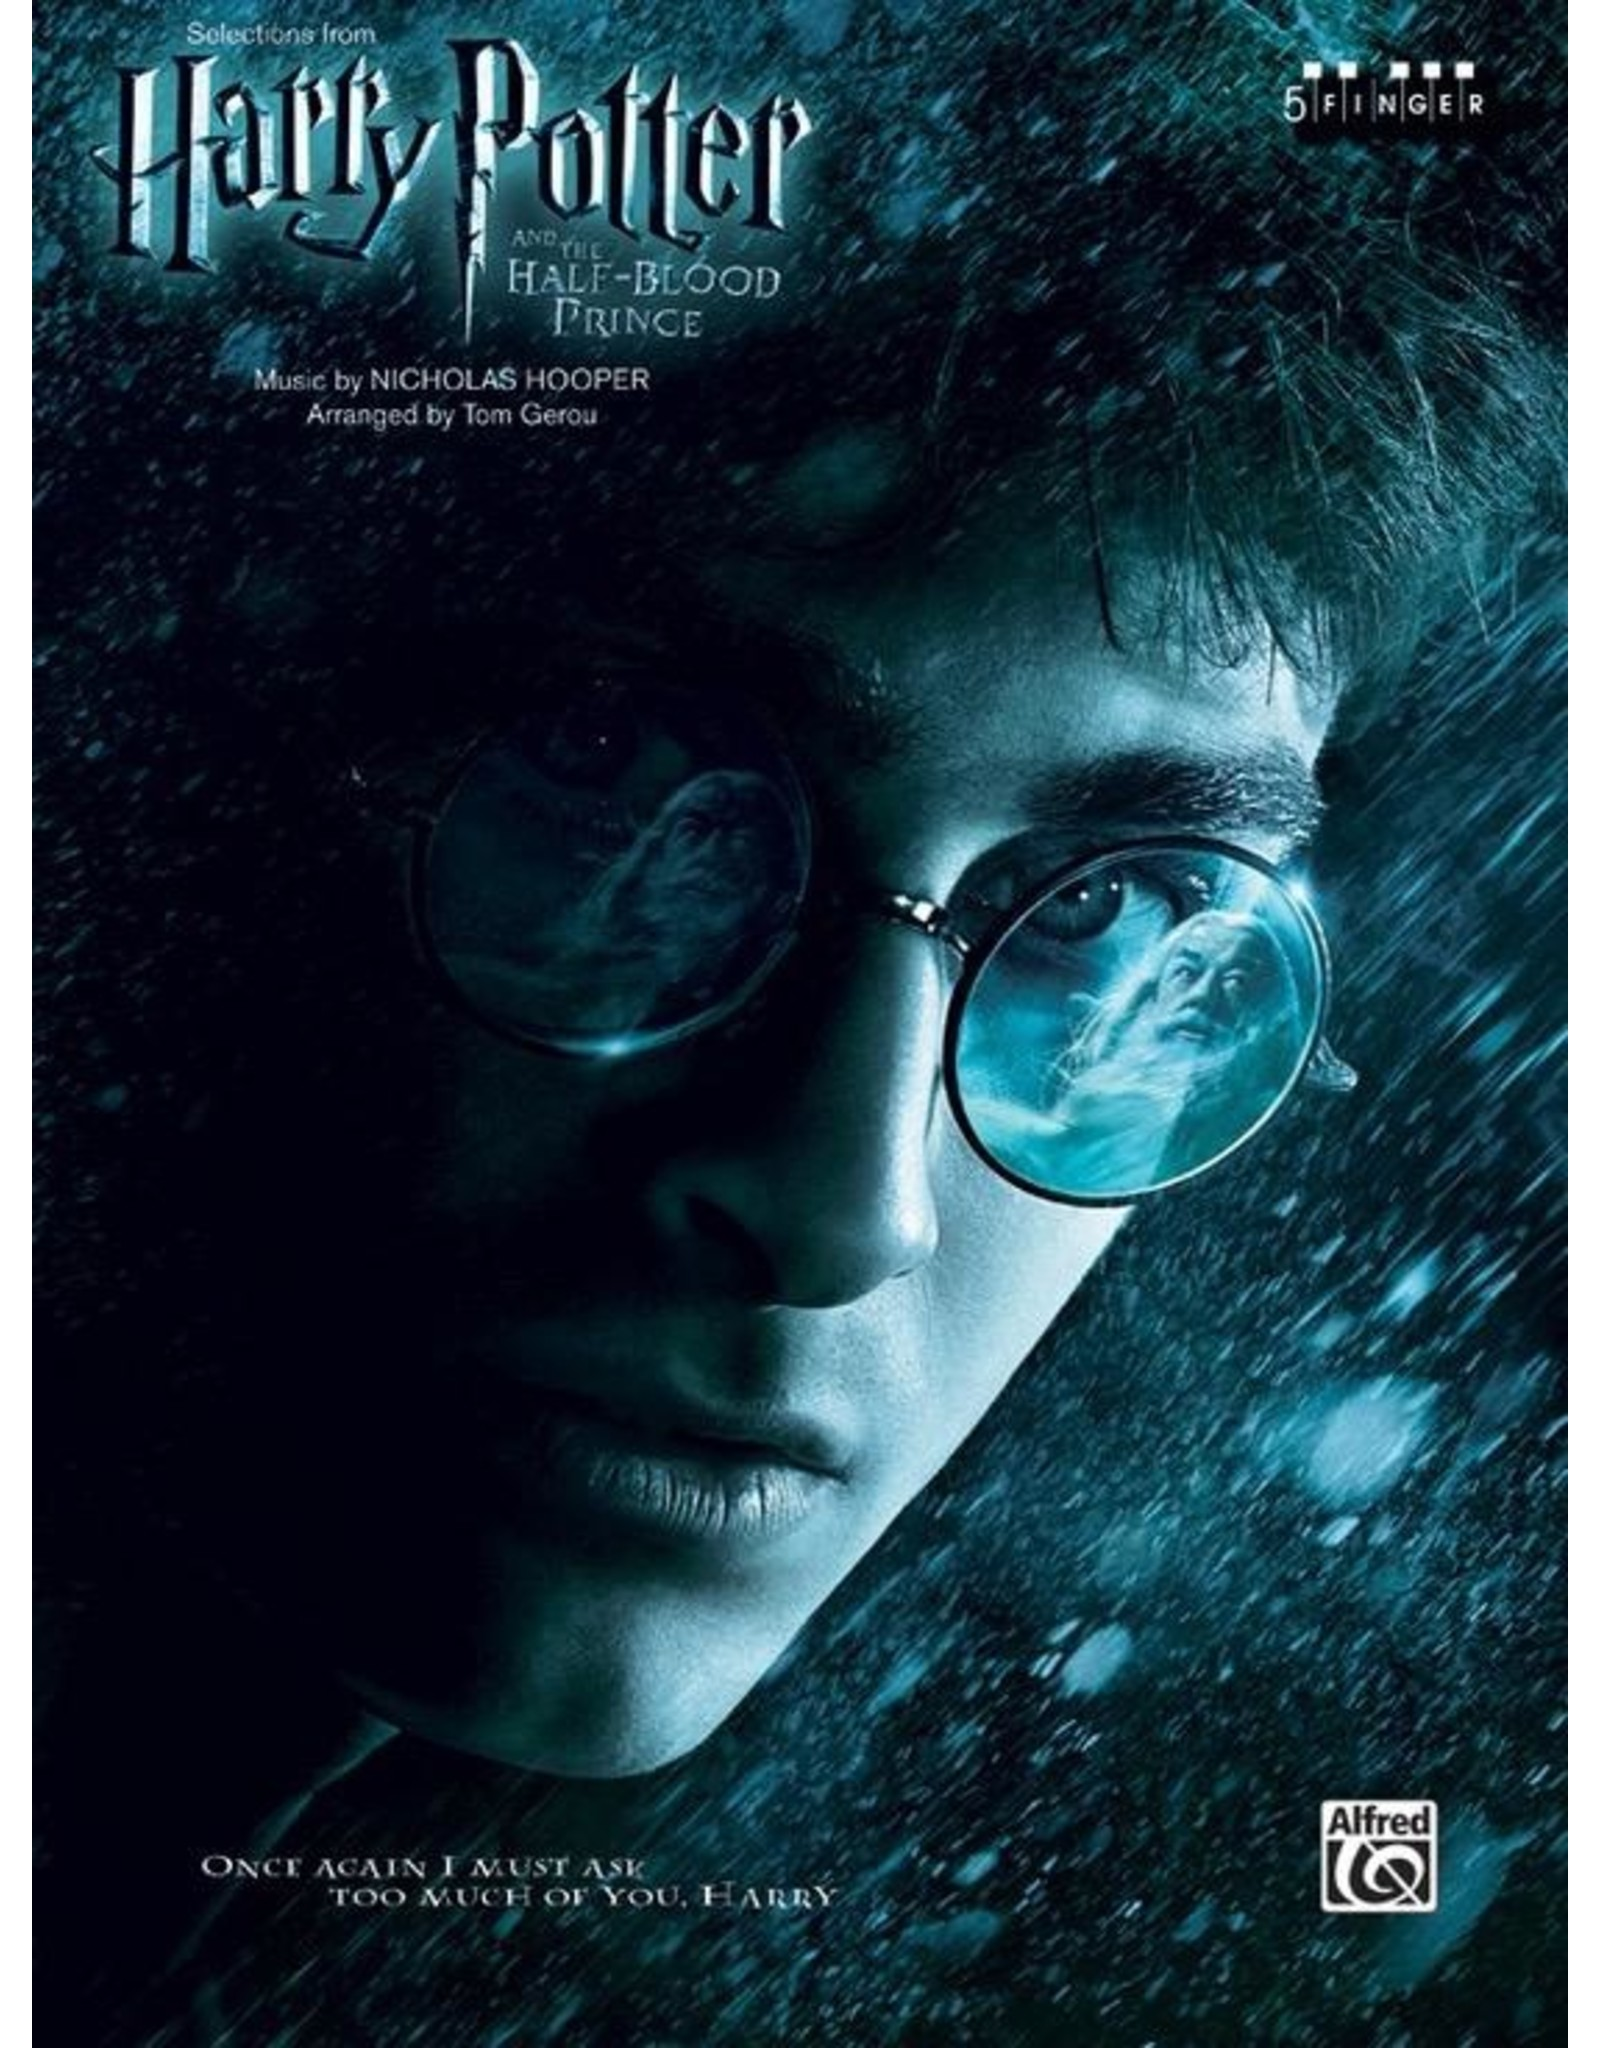 Alfred Harry Potter and the Half-Blood Prince 5 Finger